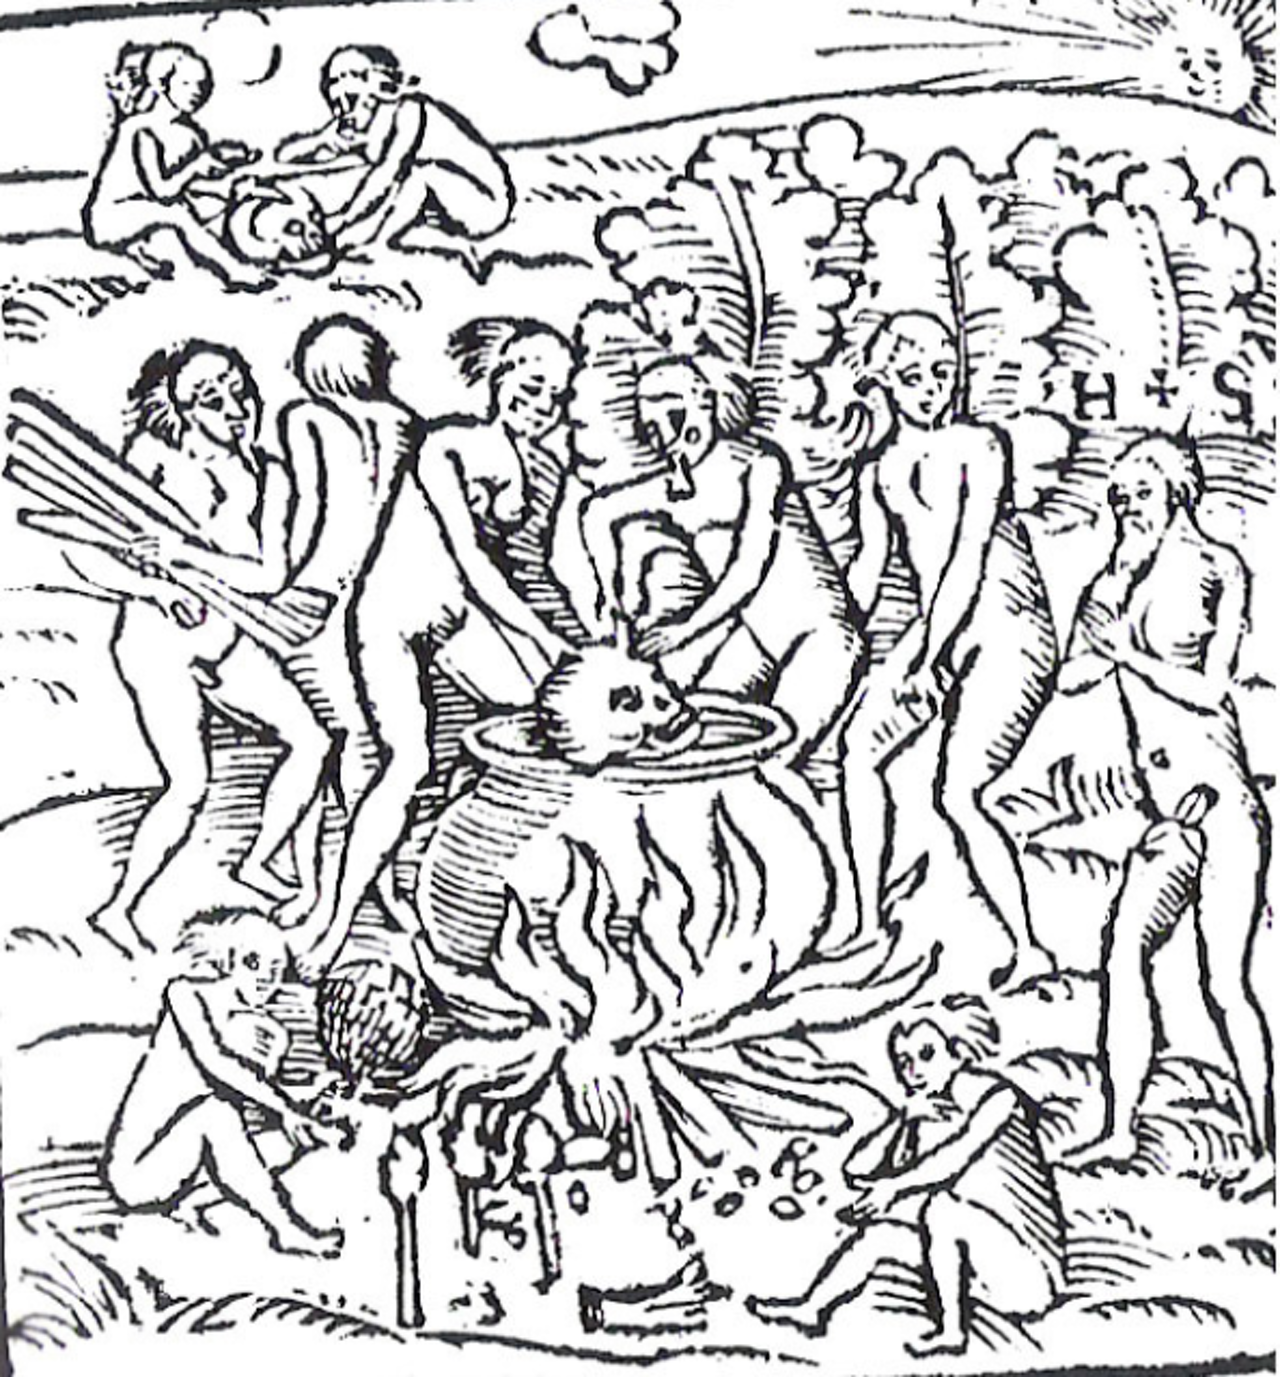 Woodcut of the Tupinambá during a cannibalistic feast by Hans Staden. Staden is the bearded man on the far right.